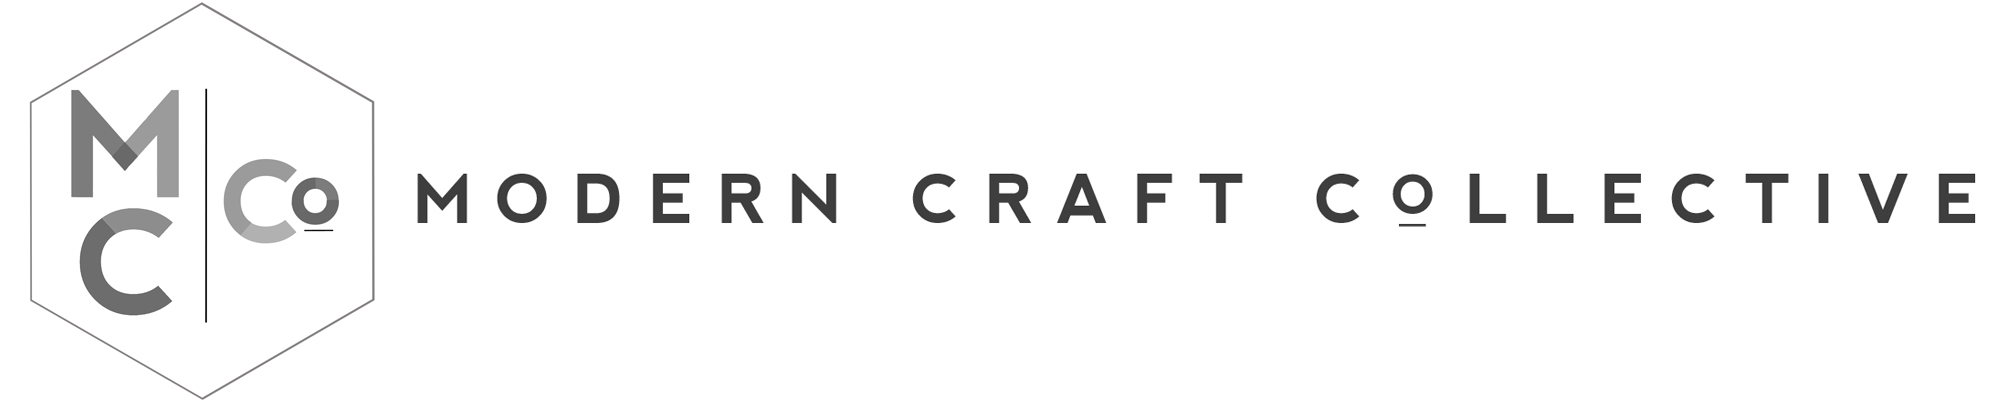 Modern Craft Collective